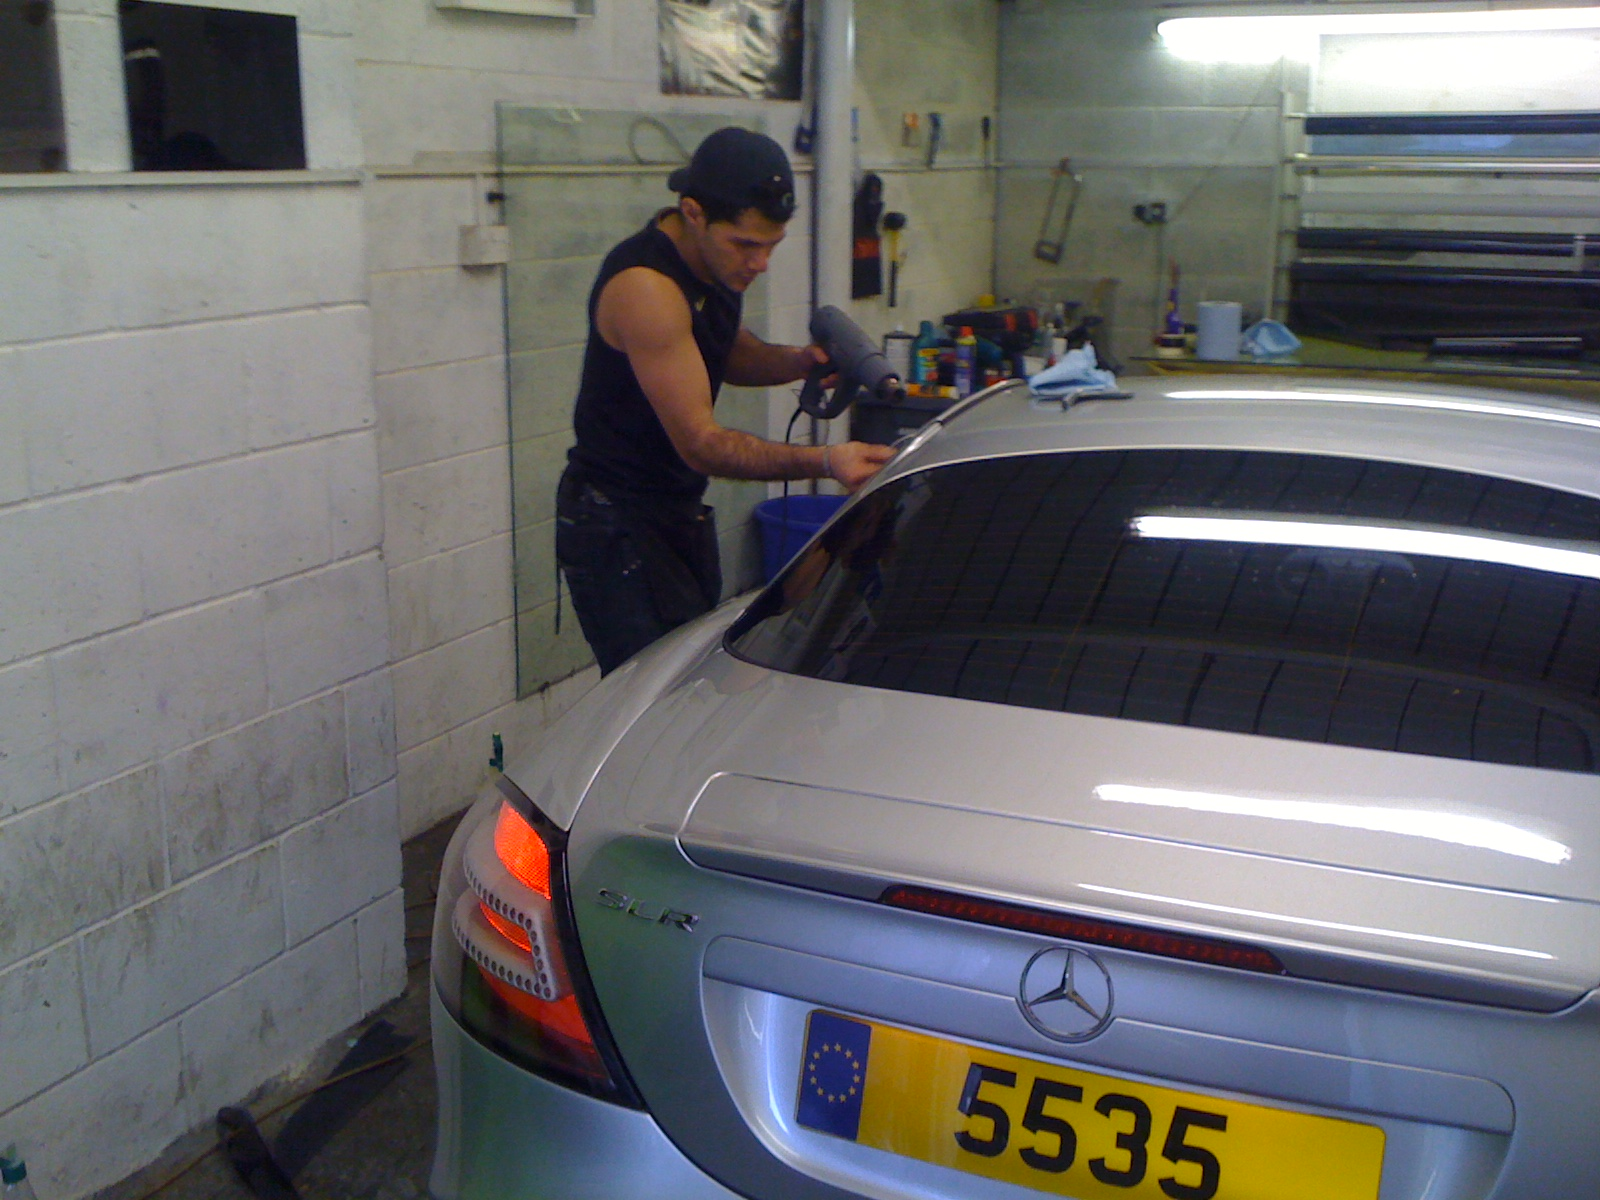 #mclaren #sls #mercedes #amg #windowtinting #love #tintings #tinter #chelsea